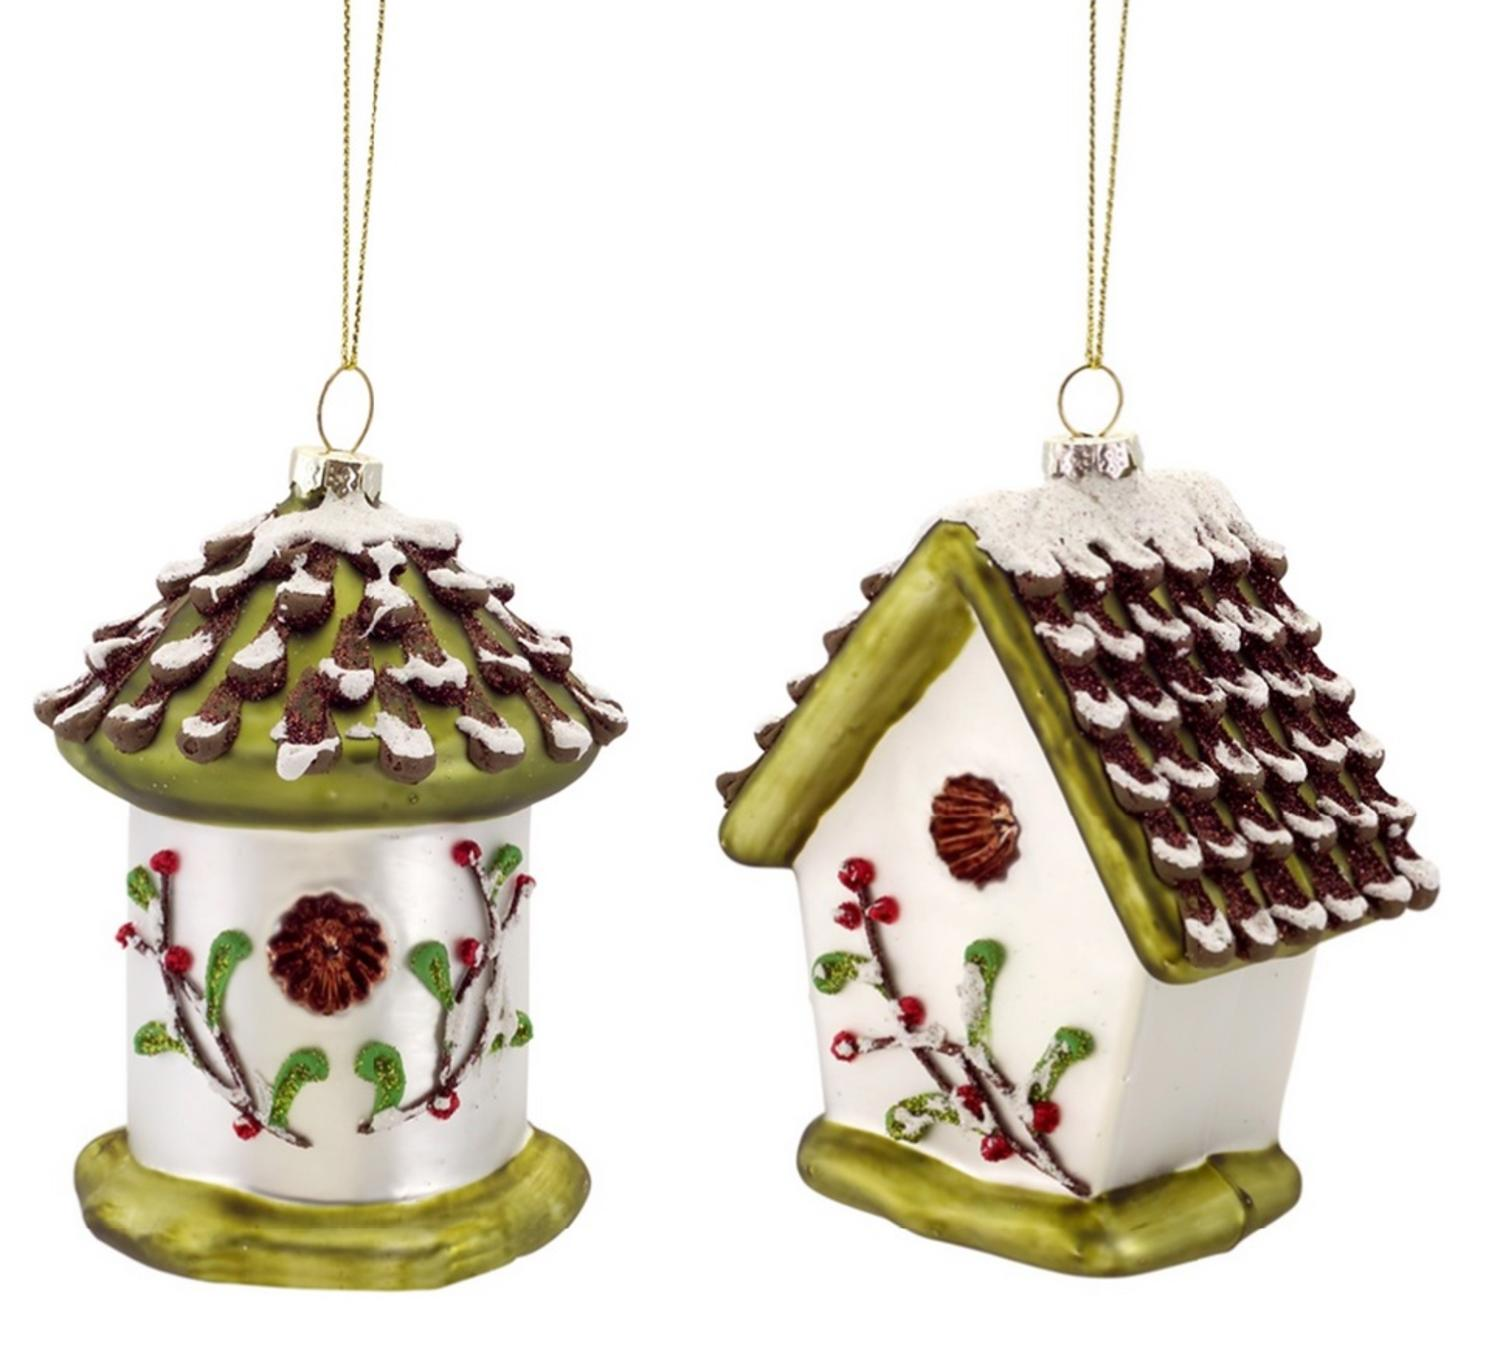 Pack of 6 Glass Glitter Snowy Birdhouse Christmas Ornaments 5""